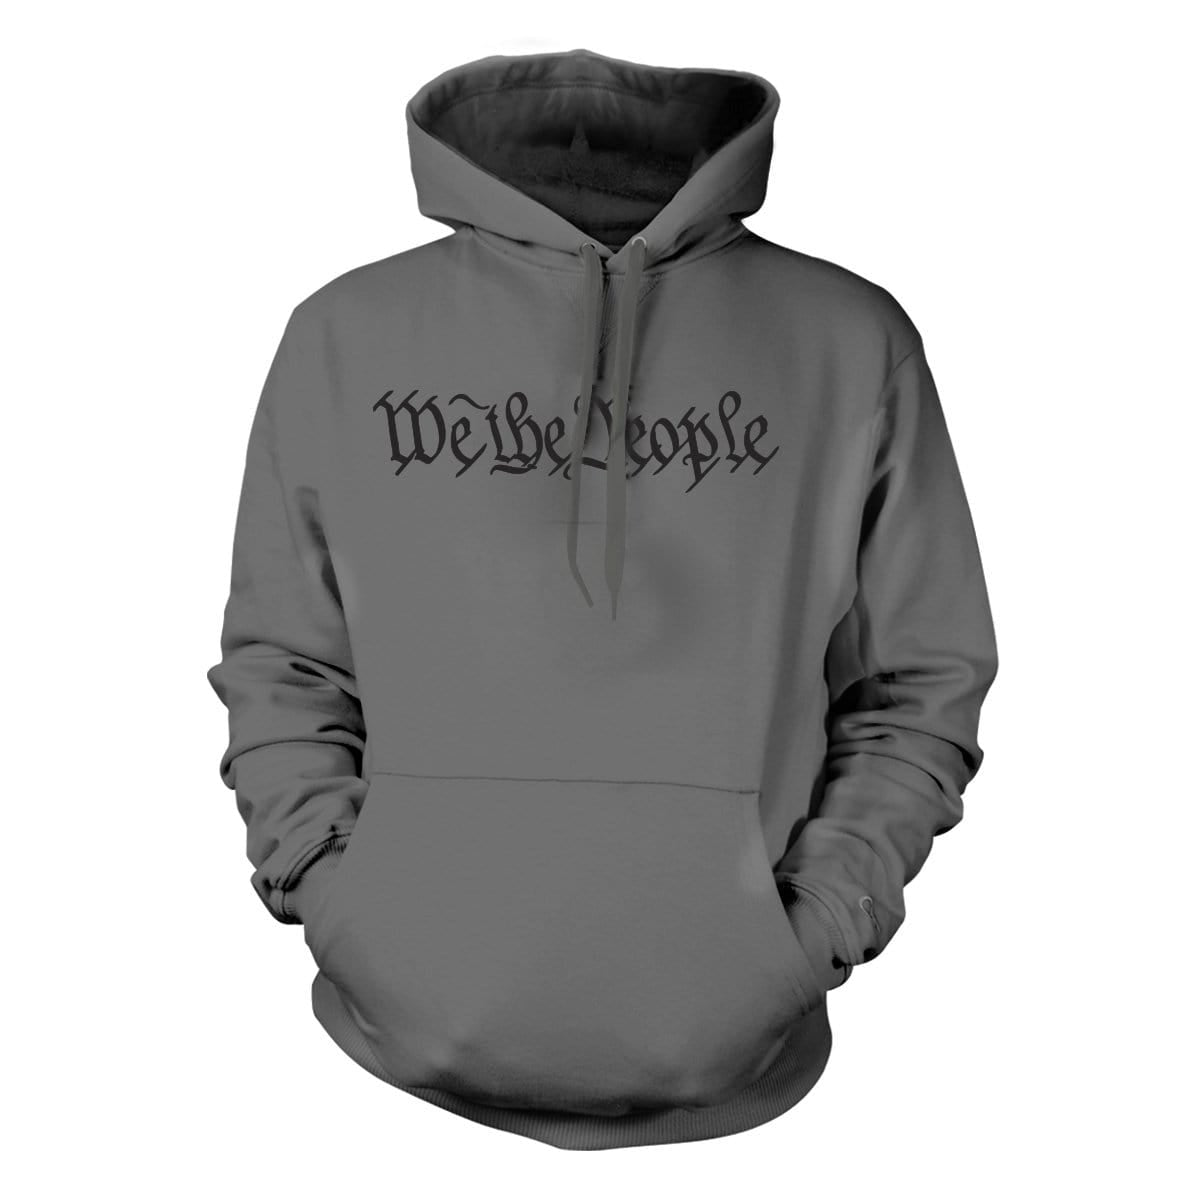 We The People Hoodie - Grey - Hoodies - Pipe Hitters Union